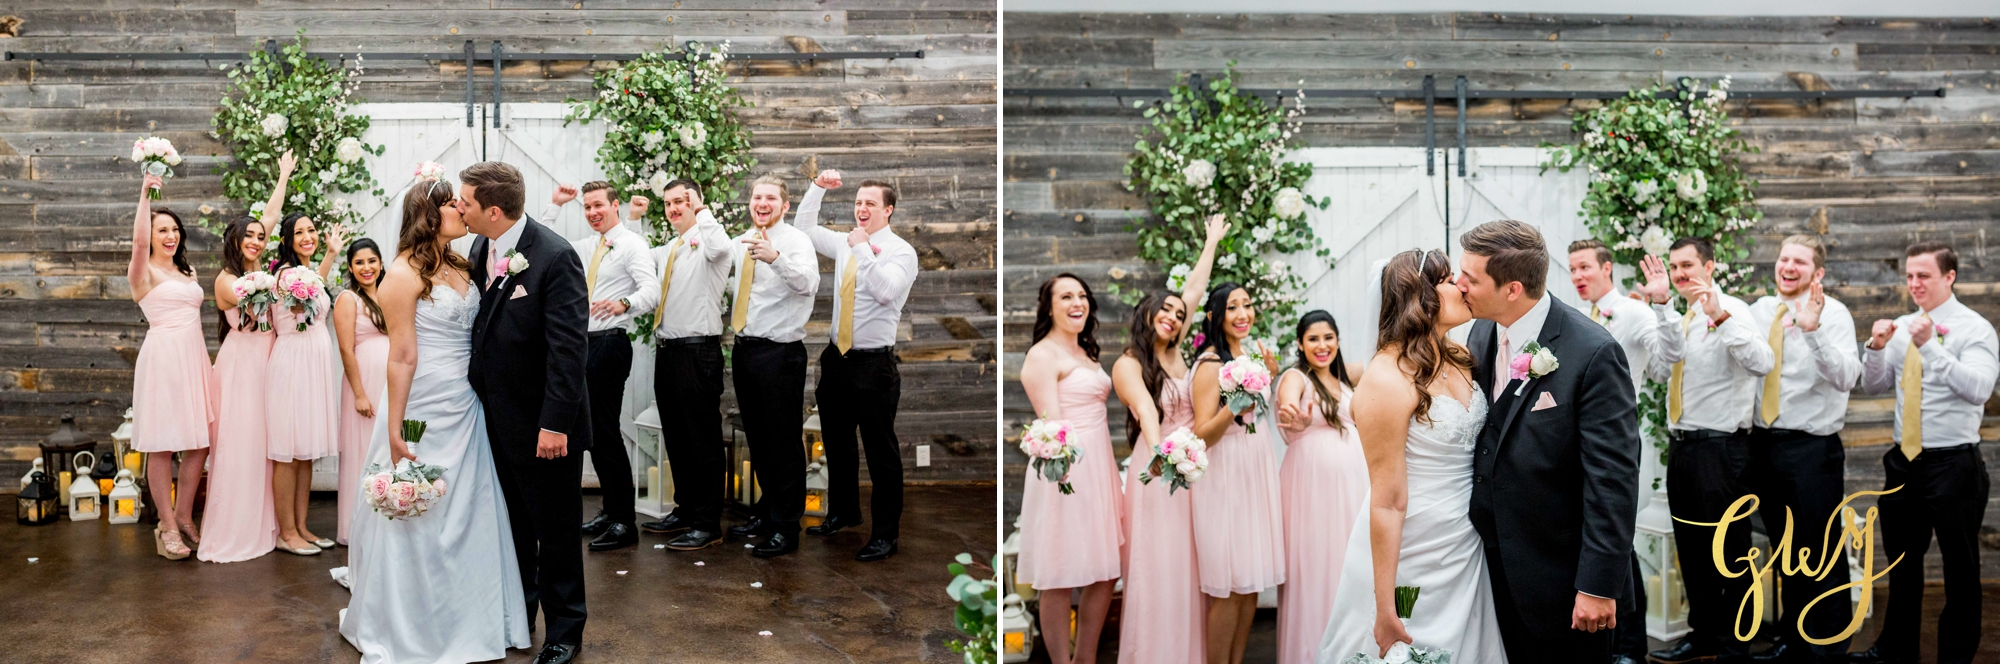 Josef + Sabrina's Vintage Rose Fairytale Spring Wedding by Glass Woods Media 31.jpg